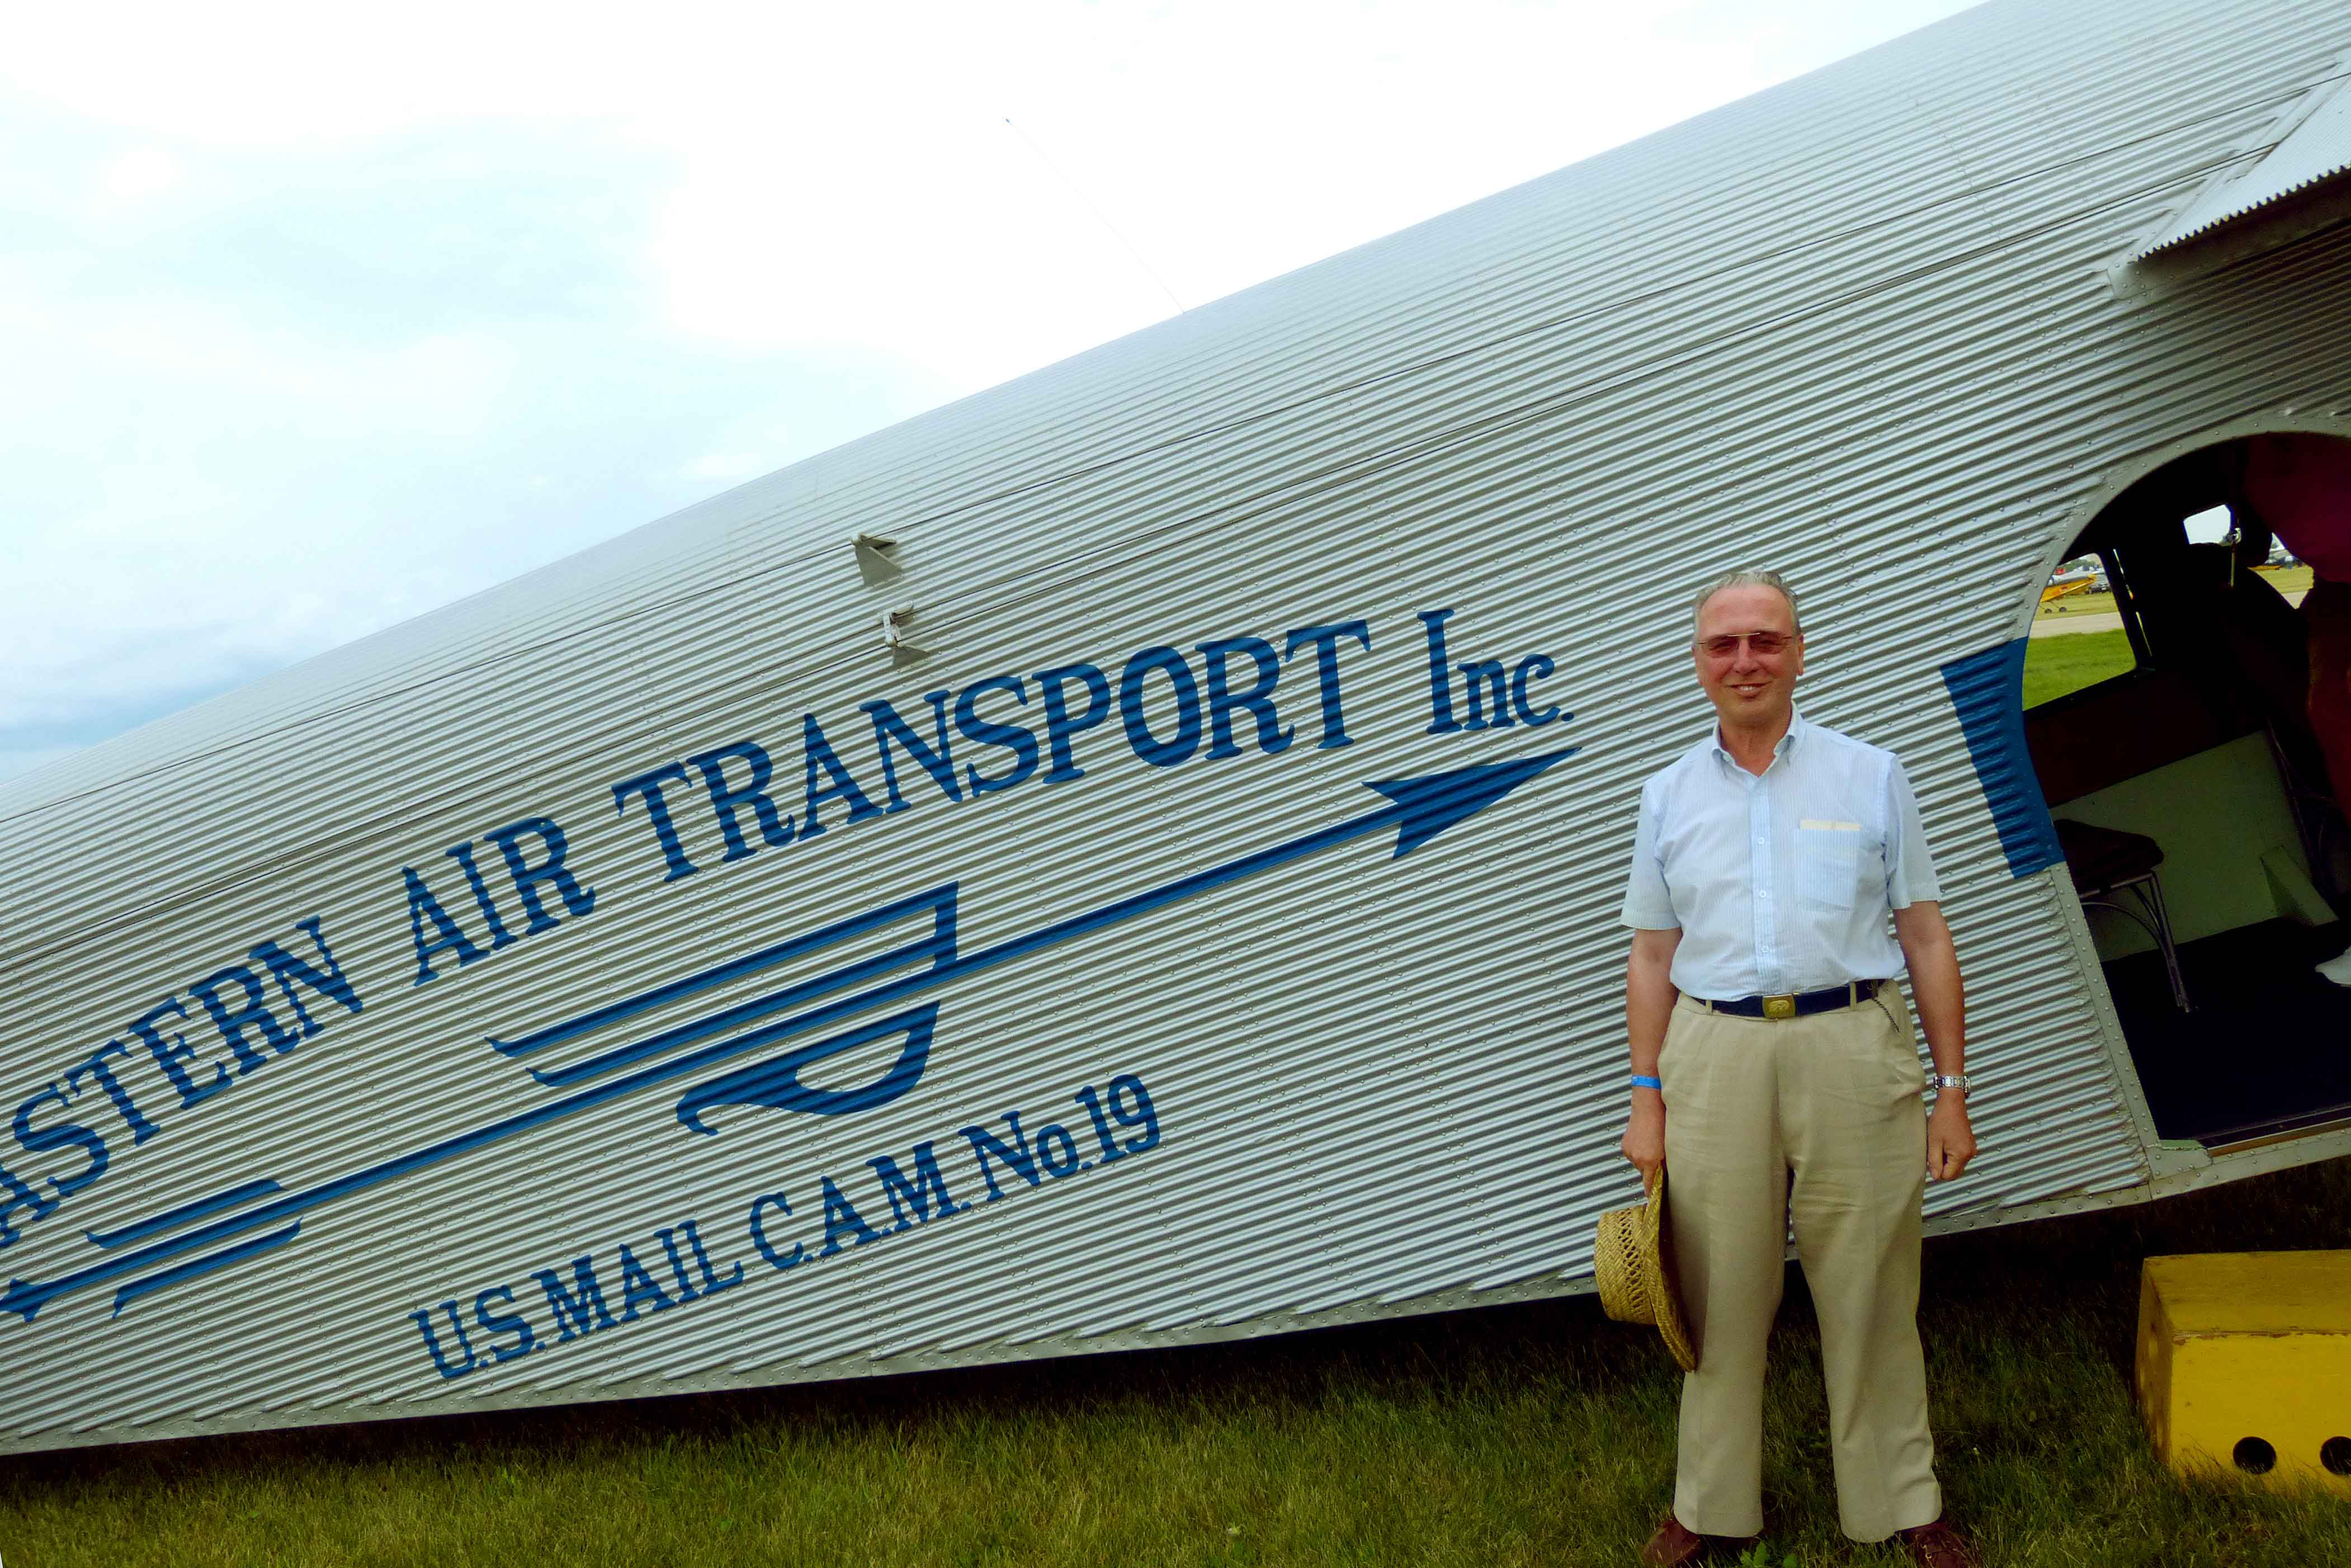 After flying in the Experimental Aircraft Association's Ford 4-AT-E Trimotor at AirVenture 2013 Oshkosh